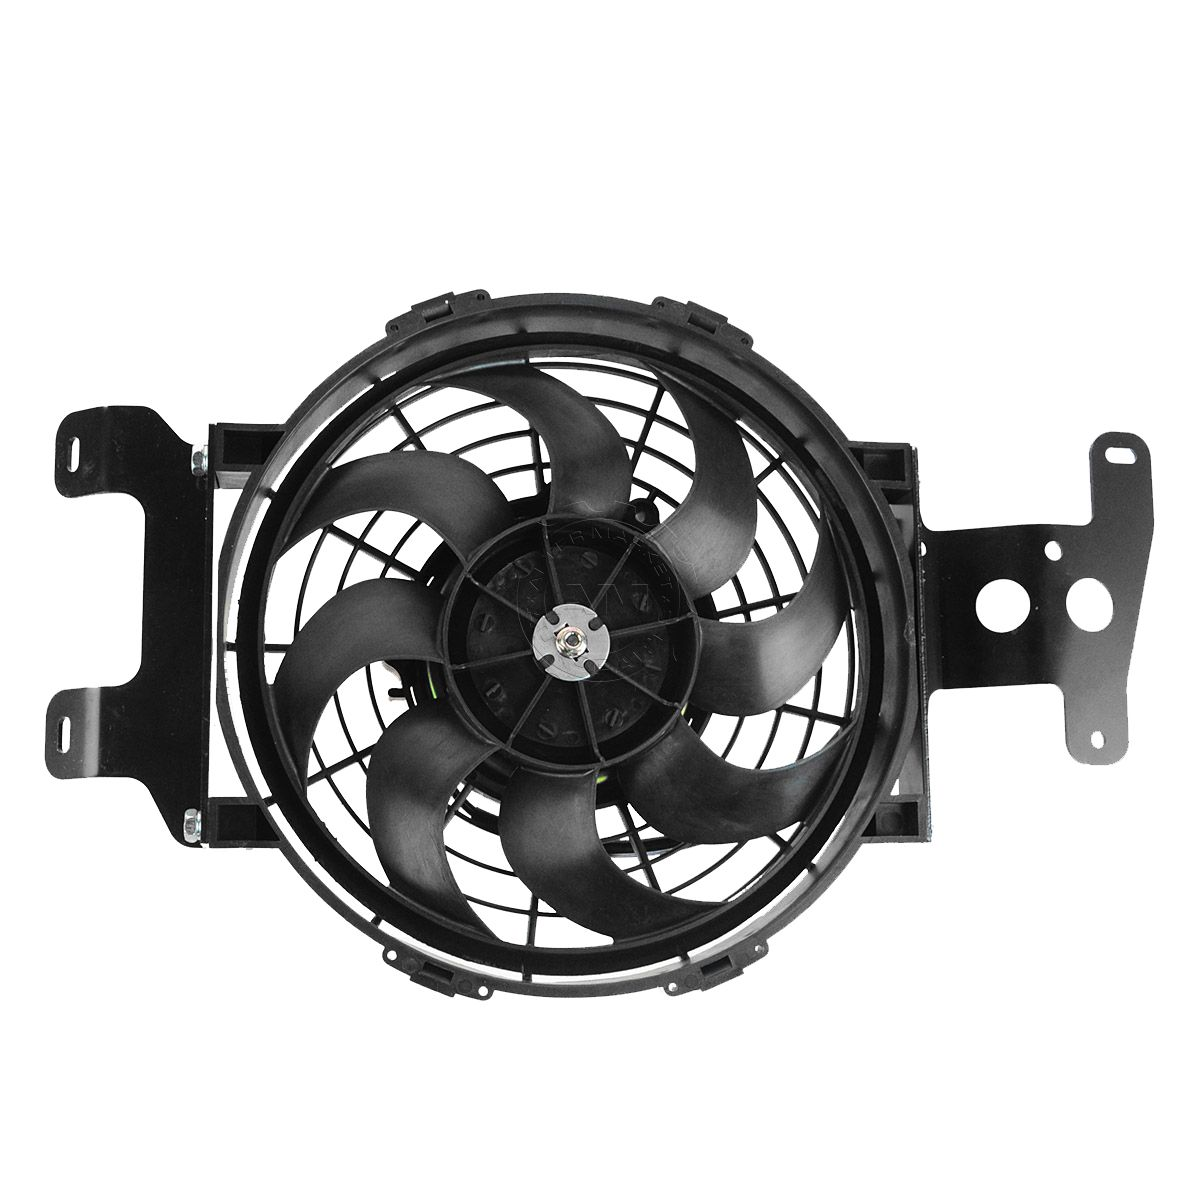 hight resolution of radiator cooling fan assembly for 02 10 ford explorer 4 door mercury mountaineer